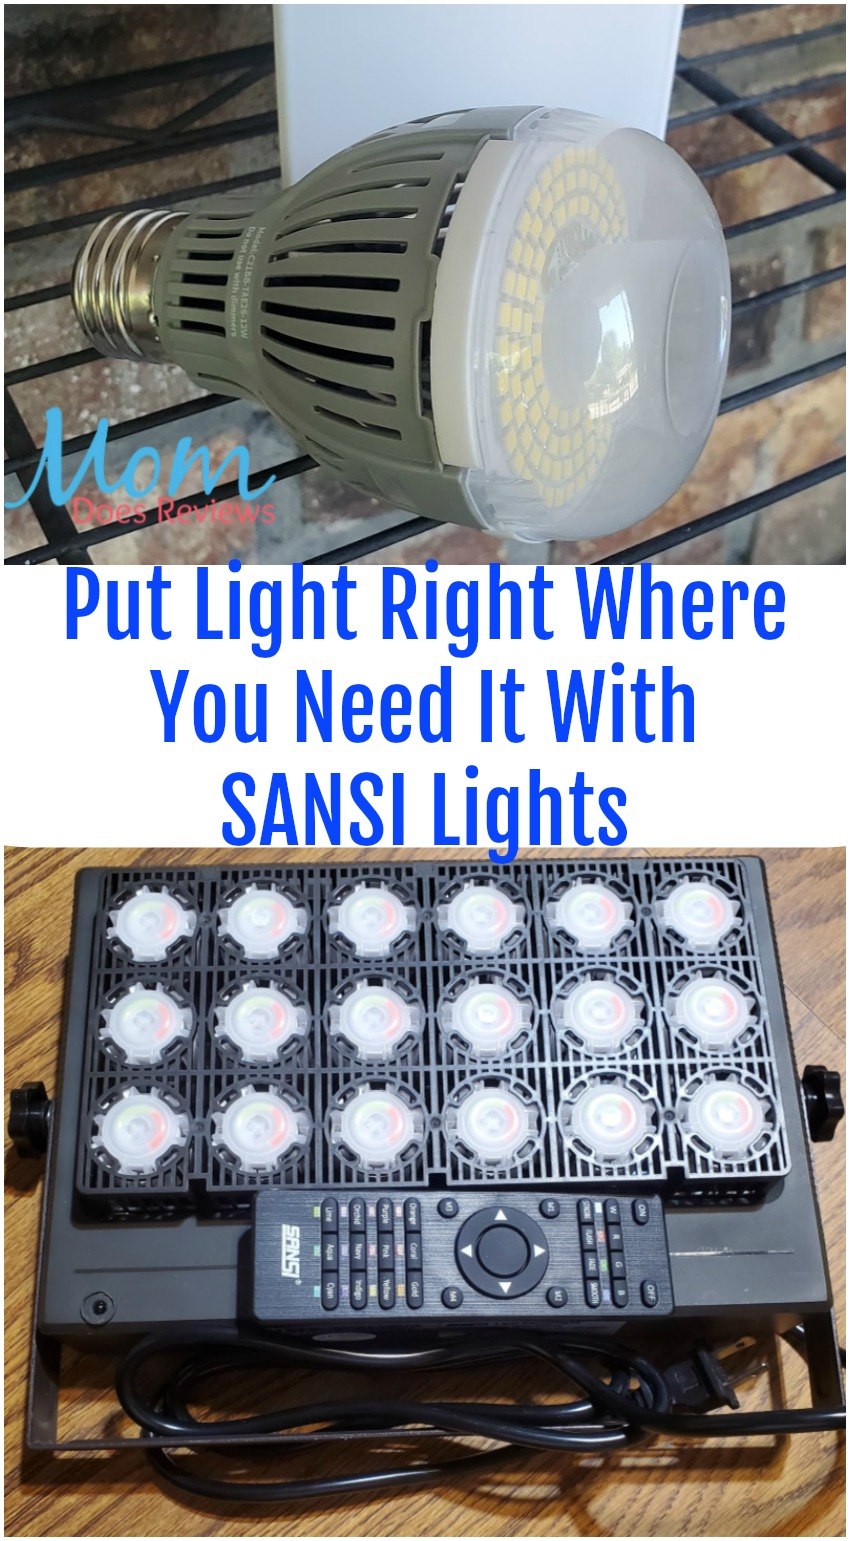 Put Light Right Where You Need It With SANSI Lights